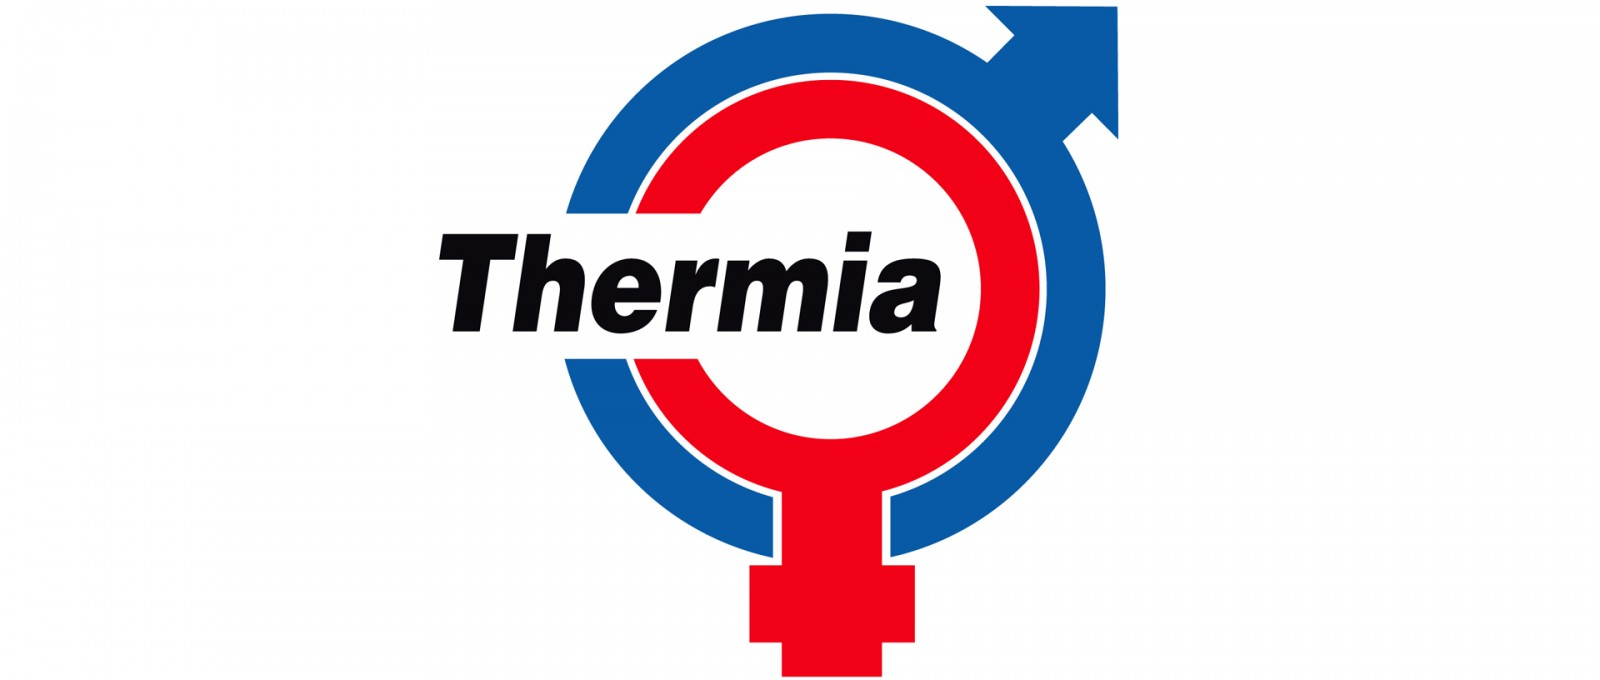 Thermia_logo_product_category.jpg